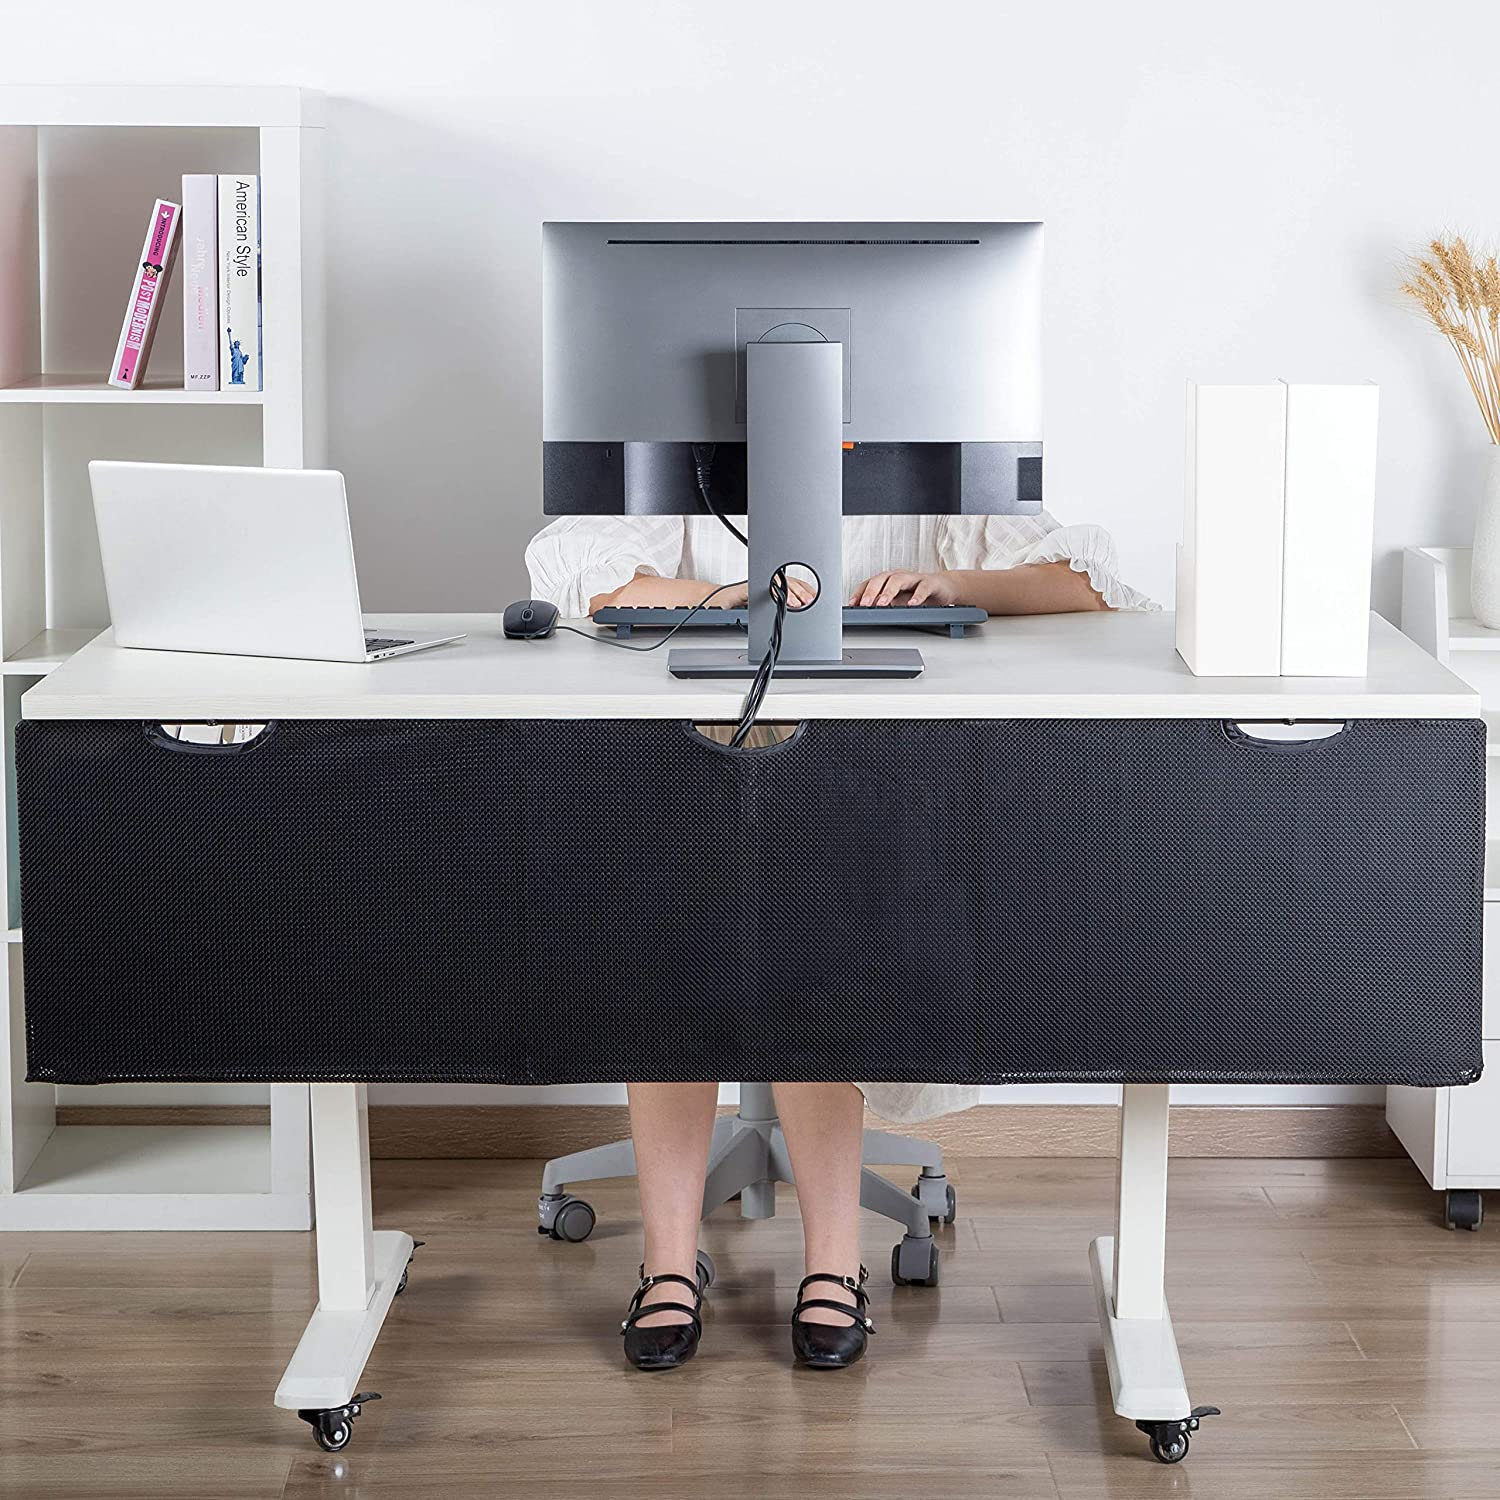 HumanCentric Under Desk Cable Management Sleeve & Privacy Panel – 60 Inches | Organize and Hide Wires with a Fabric Net Instead of J Channels and Wire Trays